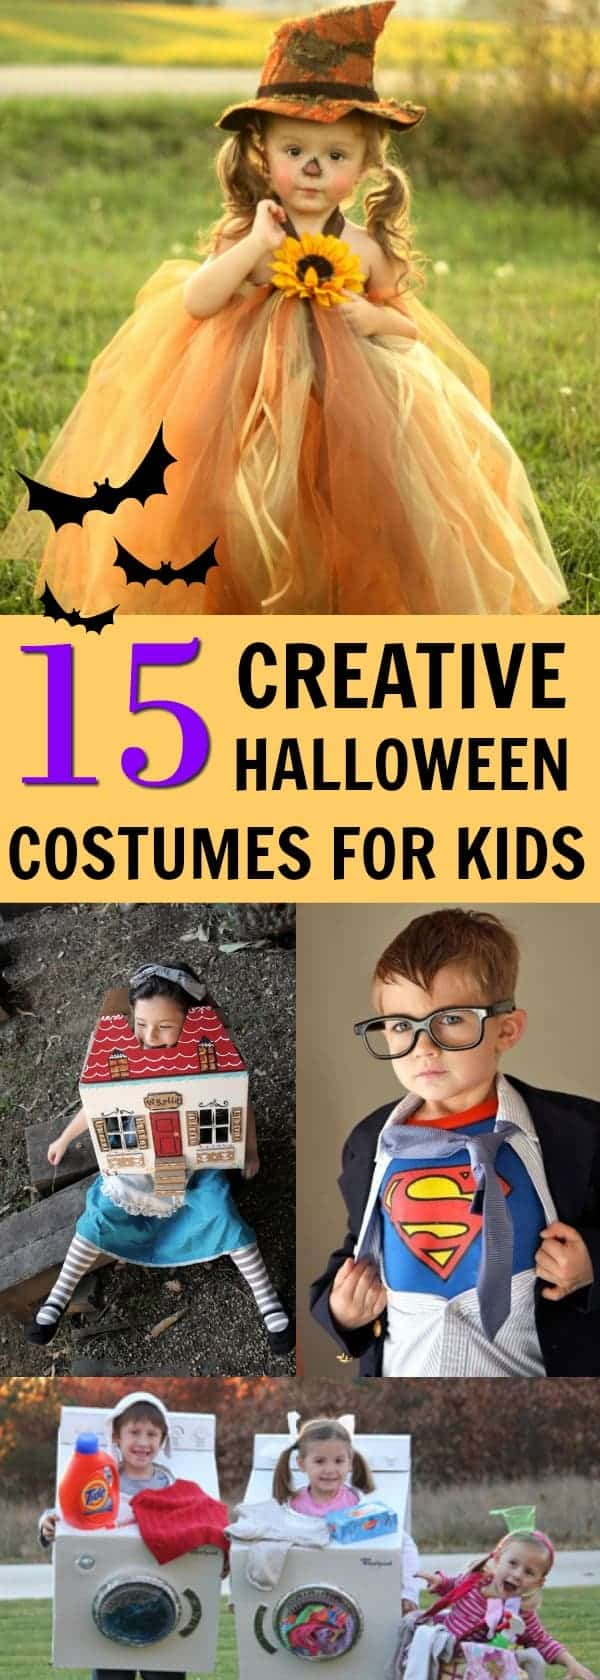 15 diy halloween costumes for kids - the anti-june cleaver